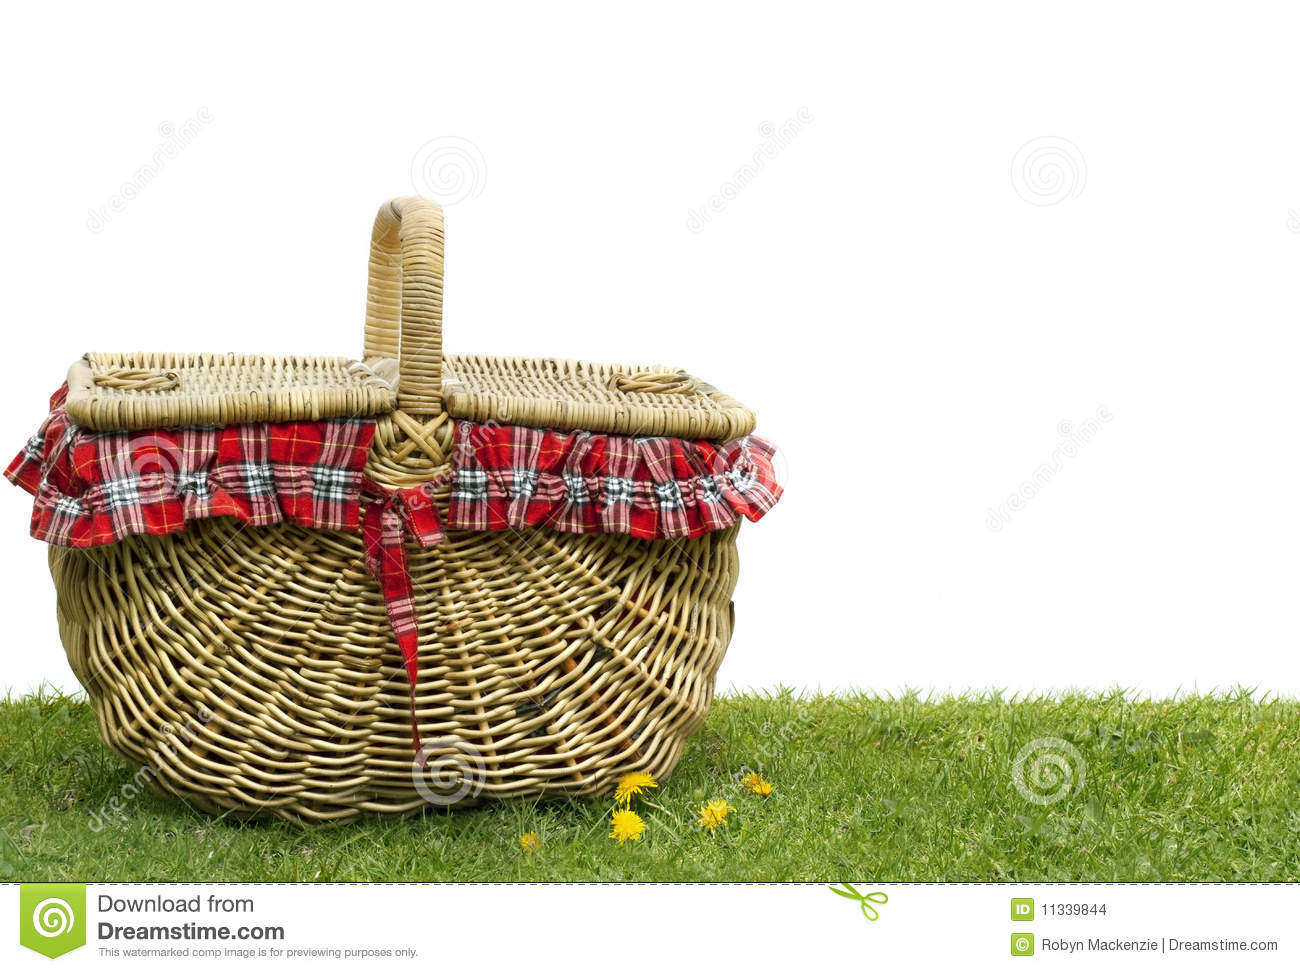 Nice wallpapers Picnic 1300x972px